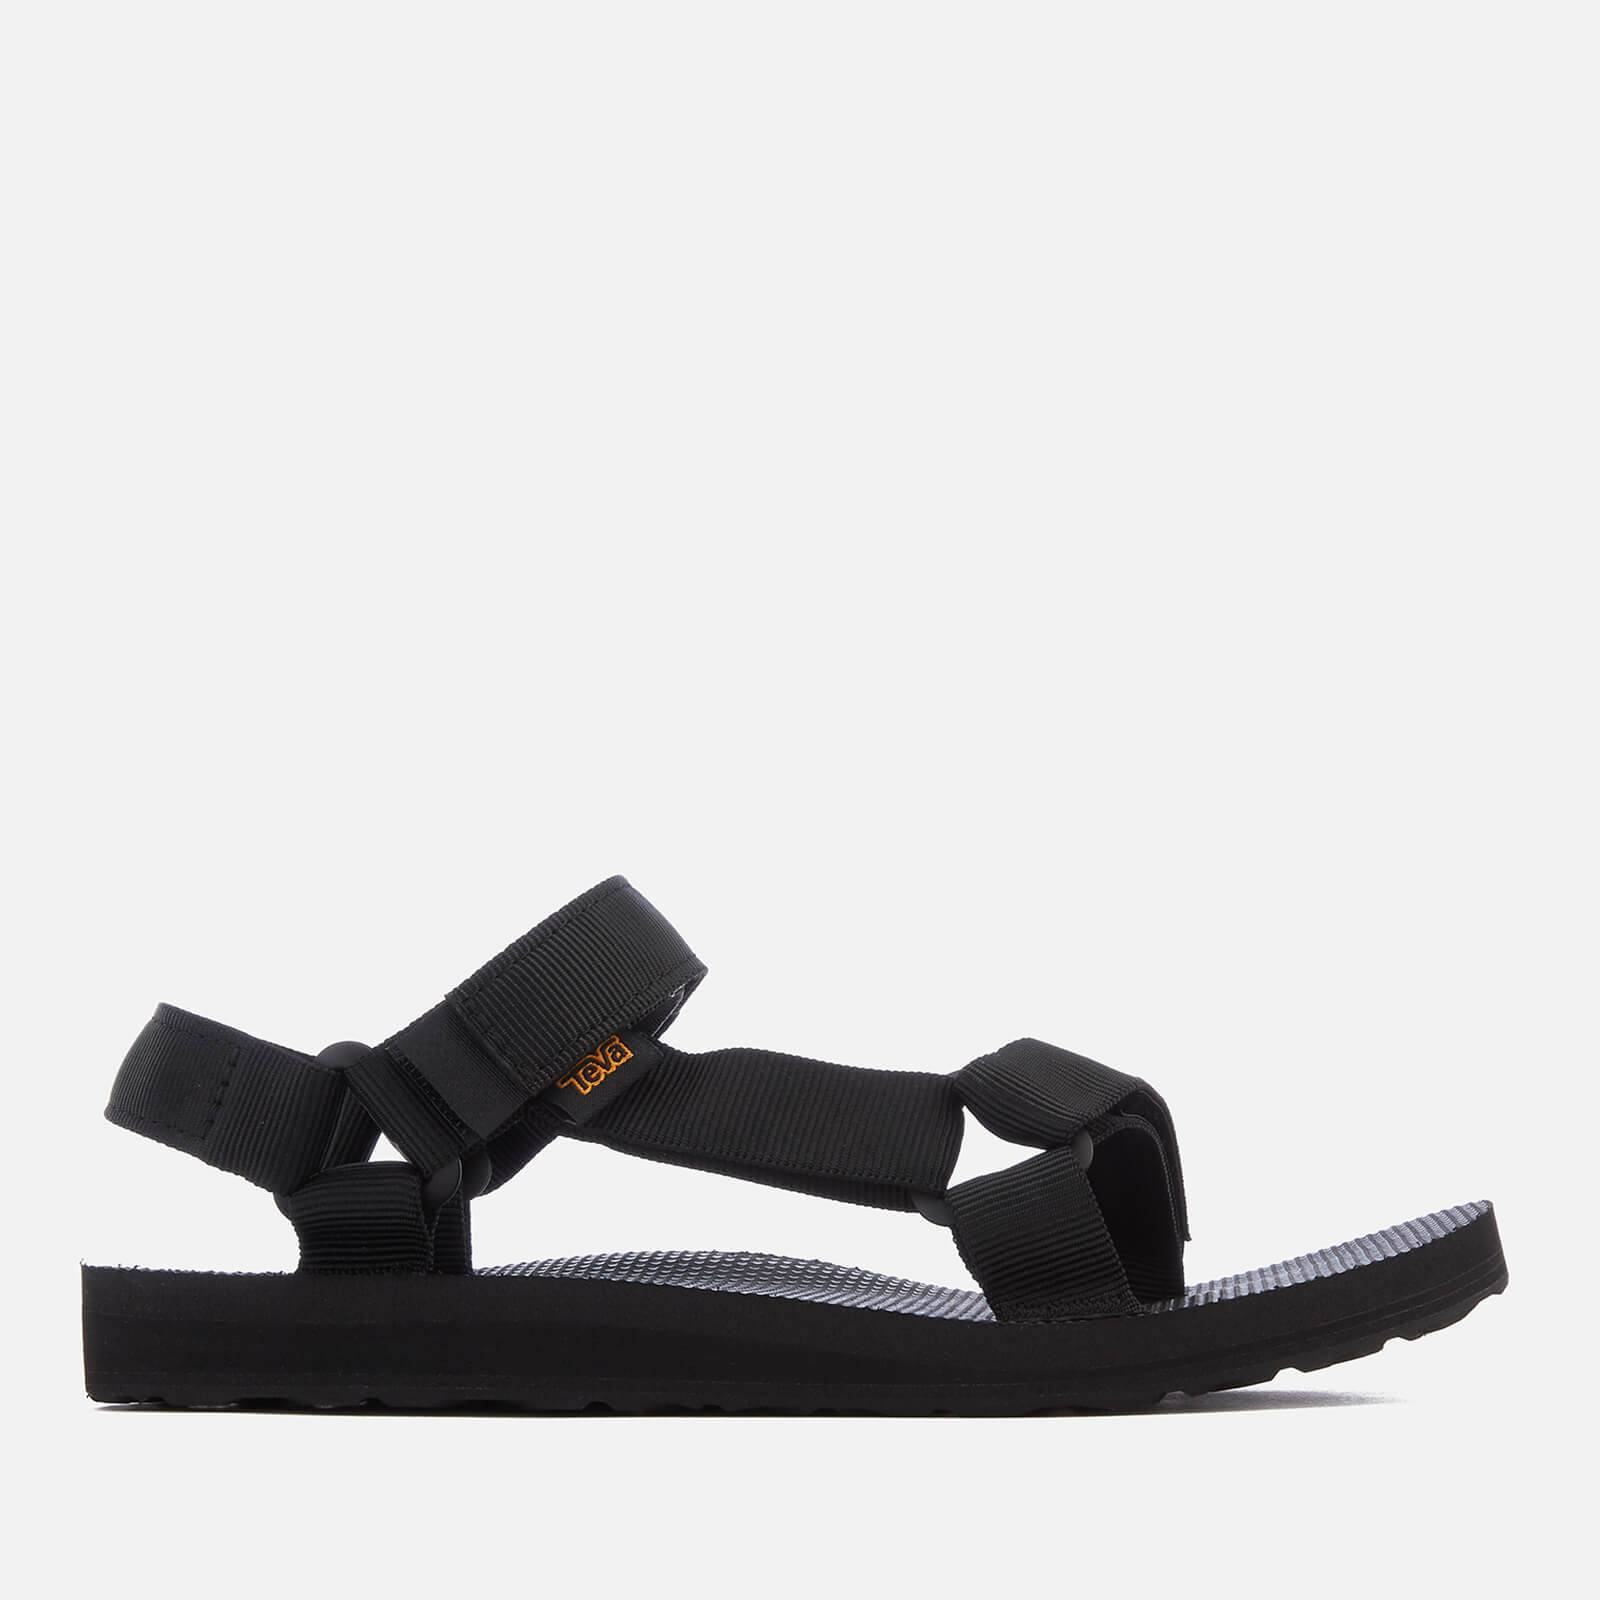 Teva Women's Original Universal Sport Sandals - Black - UK 8